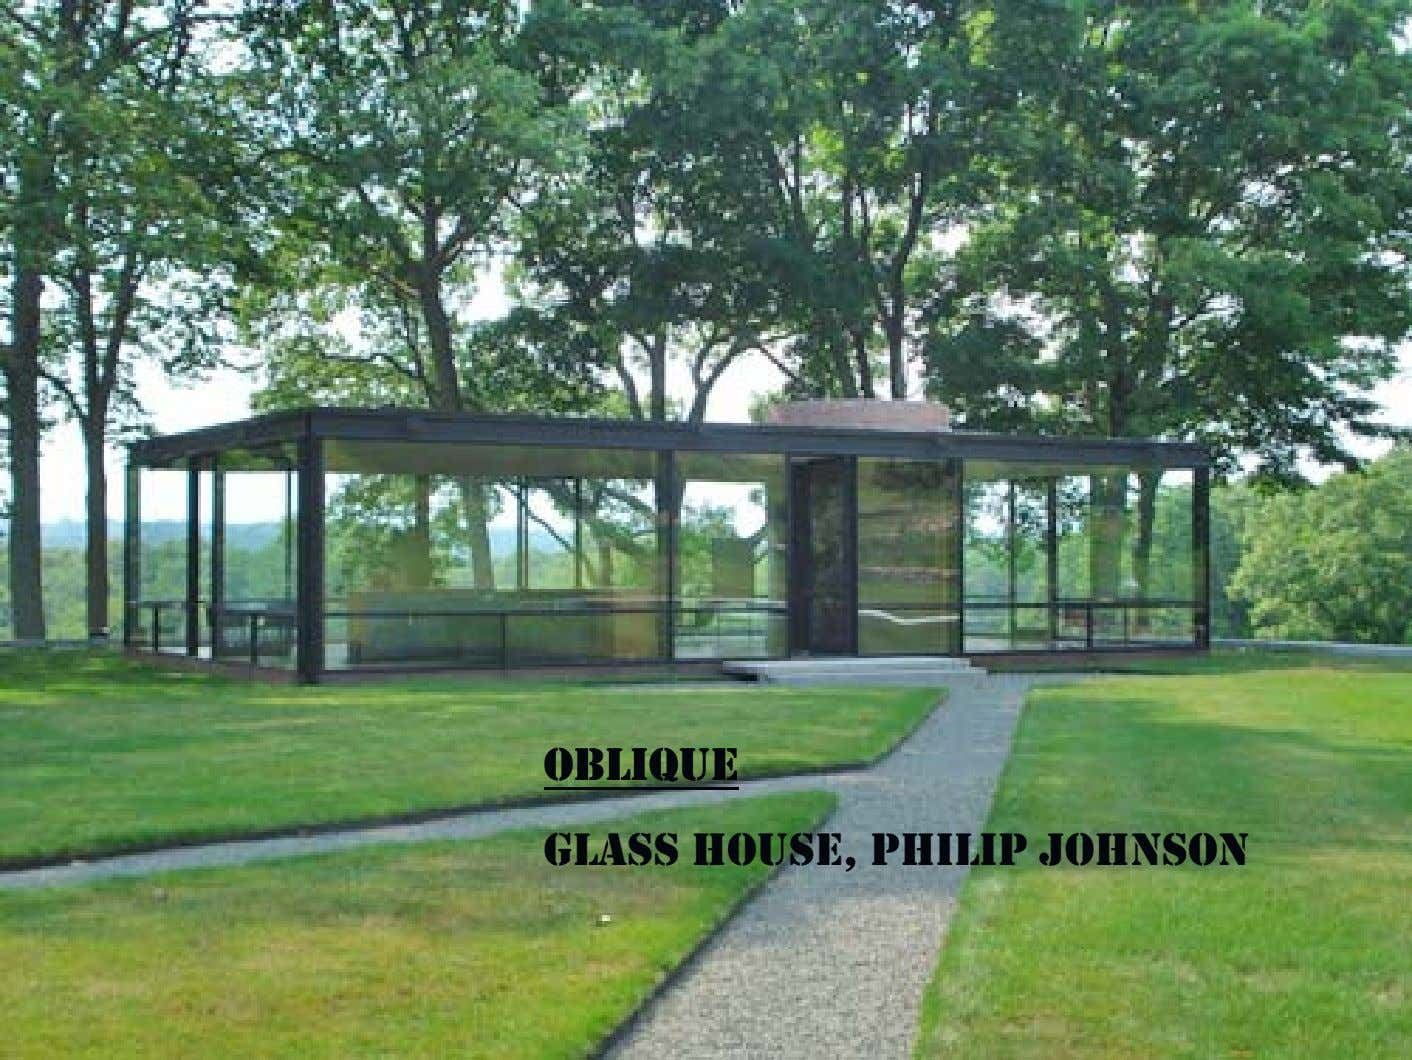 OBLIQUEOBLIQUE GLASS HOUSE, PHILIP JOHNSON